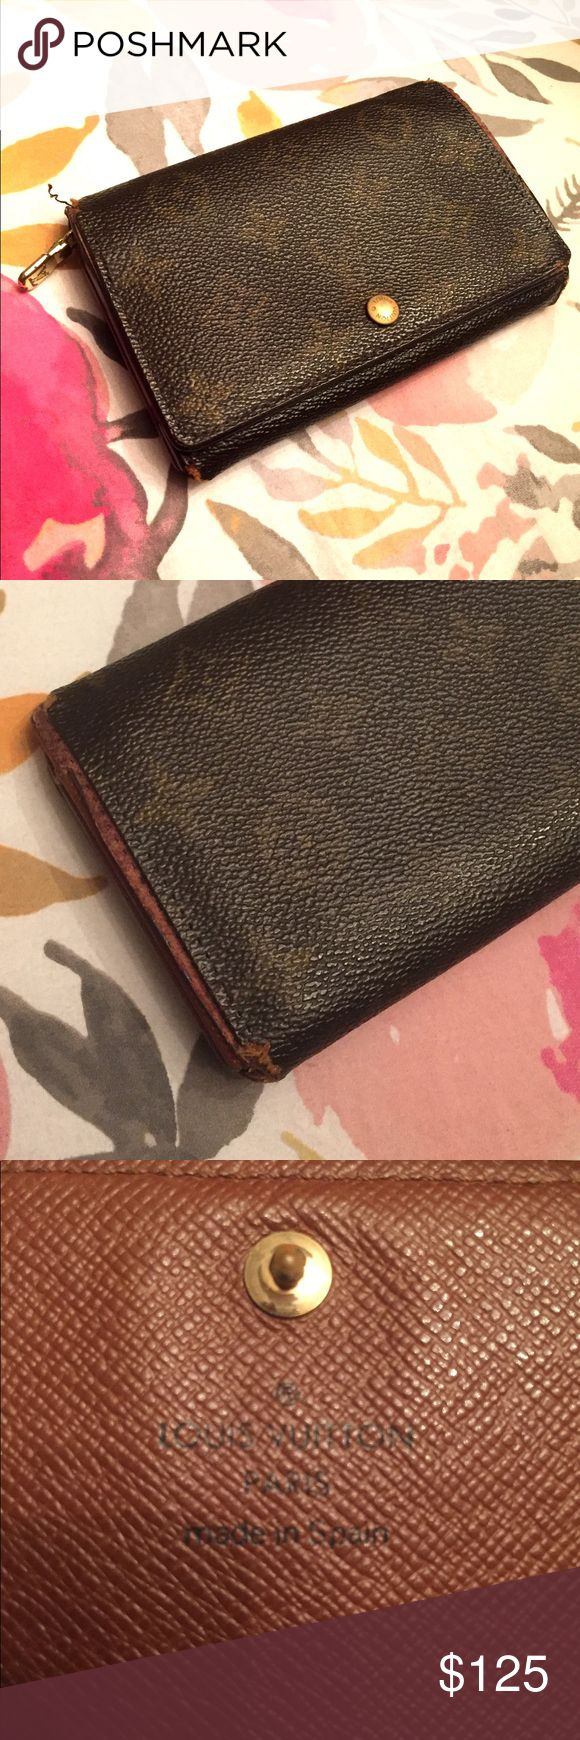 AS IS 💯 authentic vintage Louis Vuitton Wallet Well loved Louis Vuitton Wallet - many signs of use as shown but lots of life left! Make sure you take a look at the photos :) being sold as is for a very low price. Louis Vuitton Bags Wallets